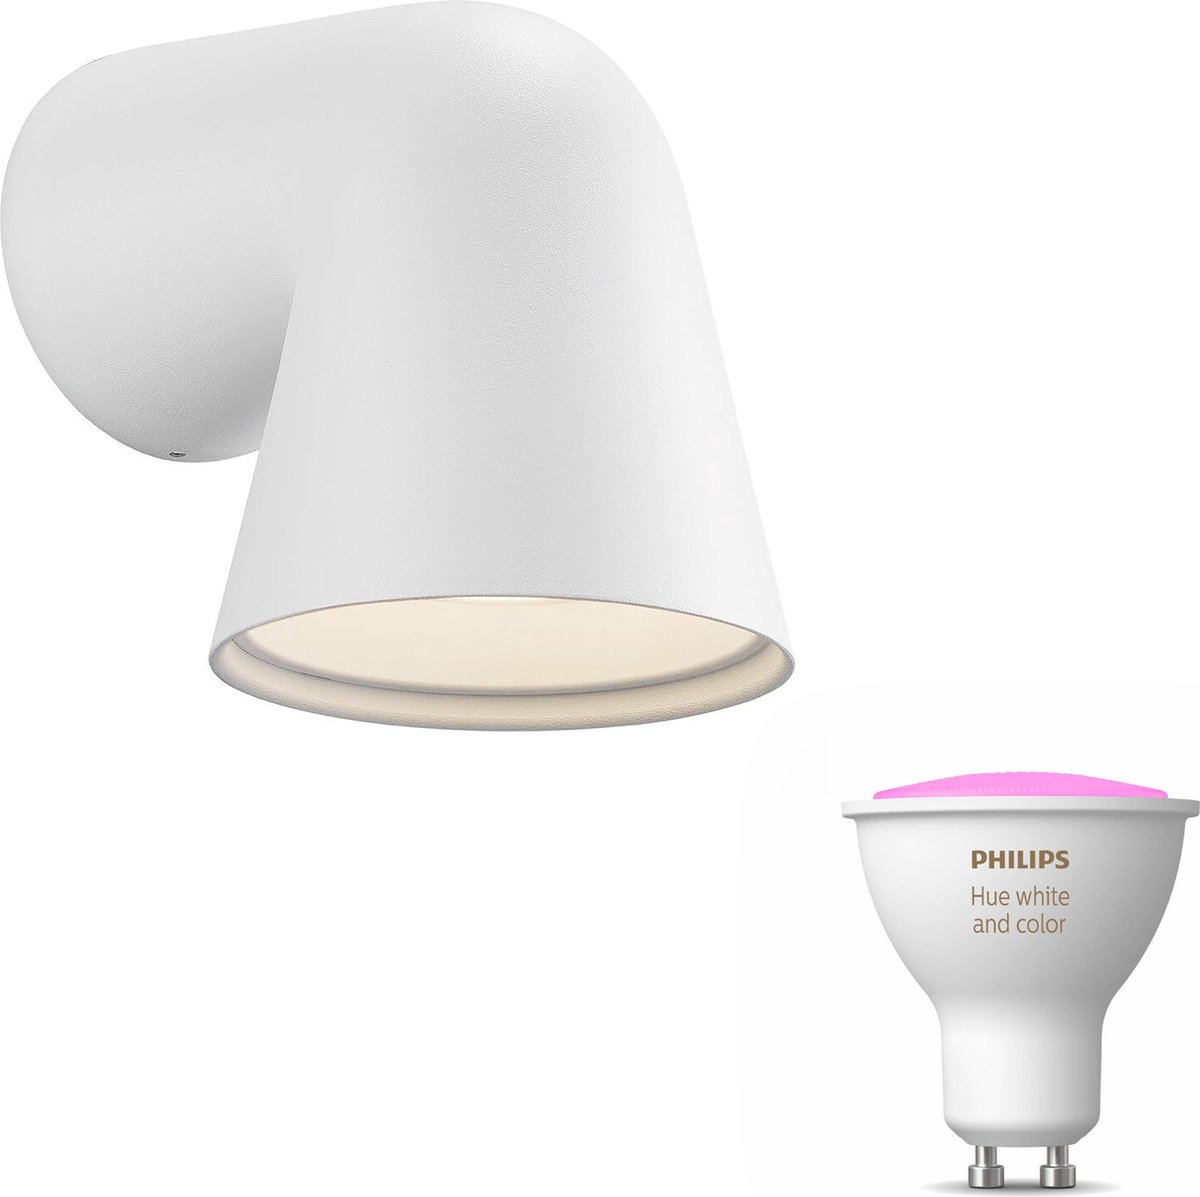 Nordlux Front wandlamp - wit - 1 lichtpunt - Incl. Philips Hue White & Color Ambiance Gu10Nordlux Front wandlamp - wit - 1 lichtpunt - Incl. Philips Hue White & Color Ambiance Gu10